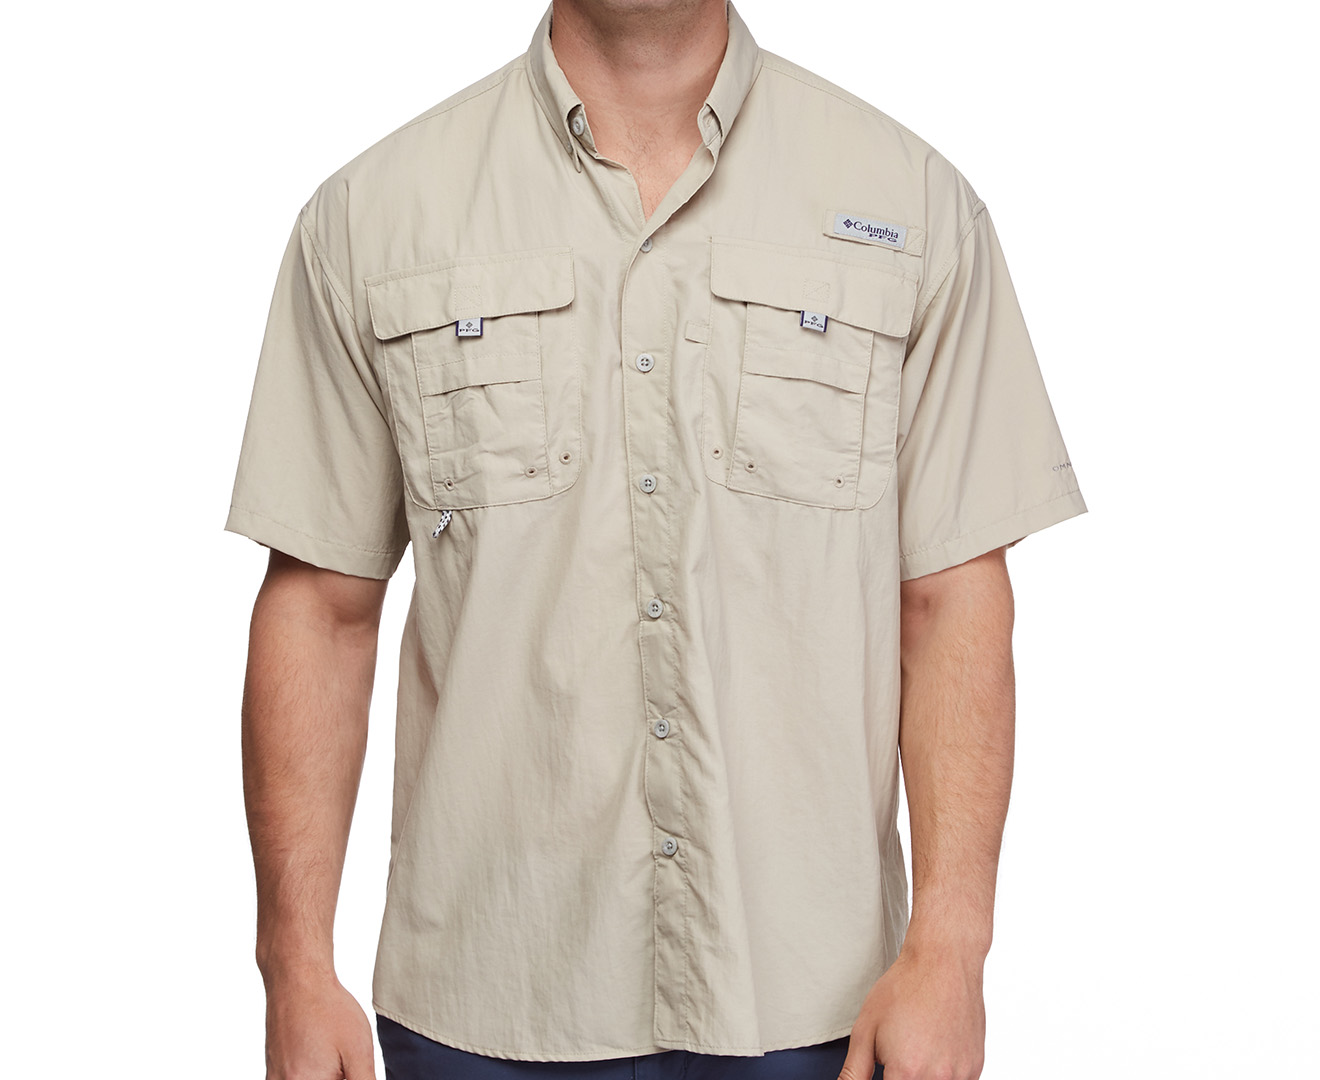 Columbia men 39 s short sleeve bahama shirt fossil great for Baby fishing shirts columbia